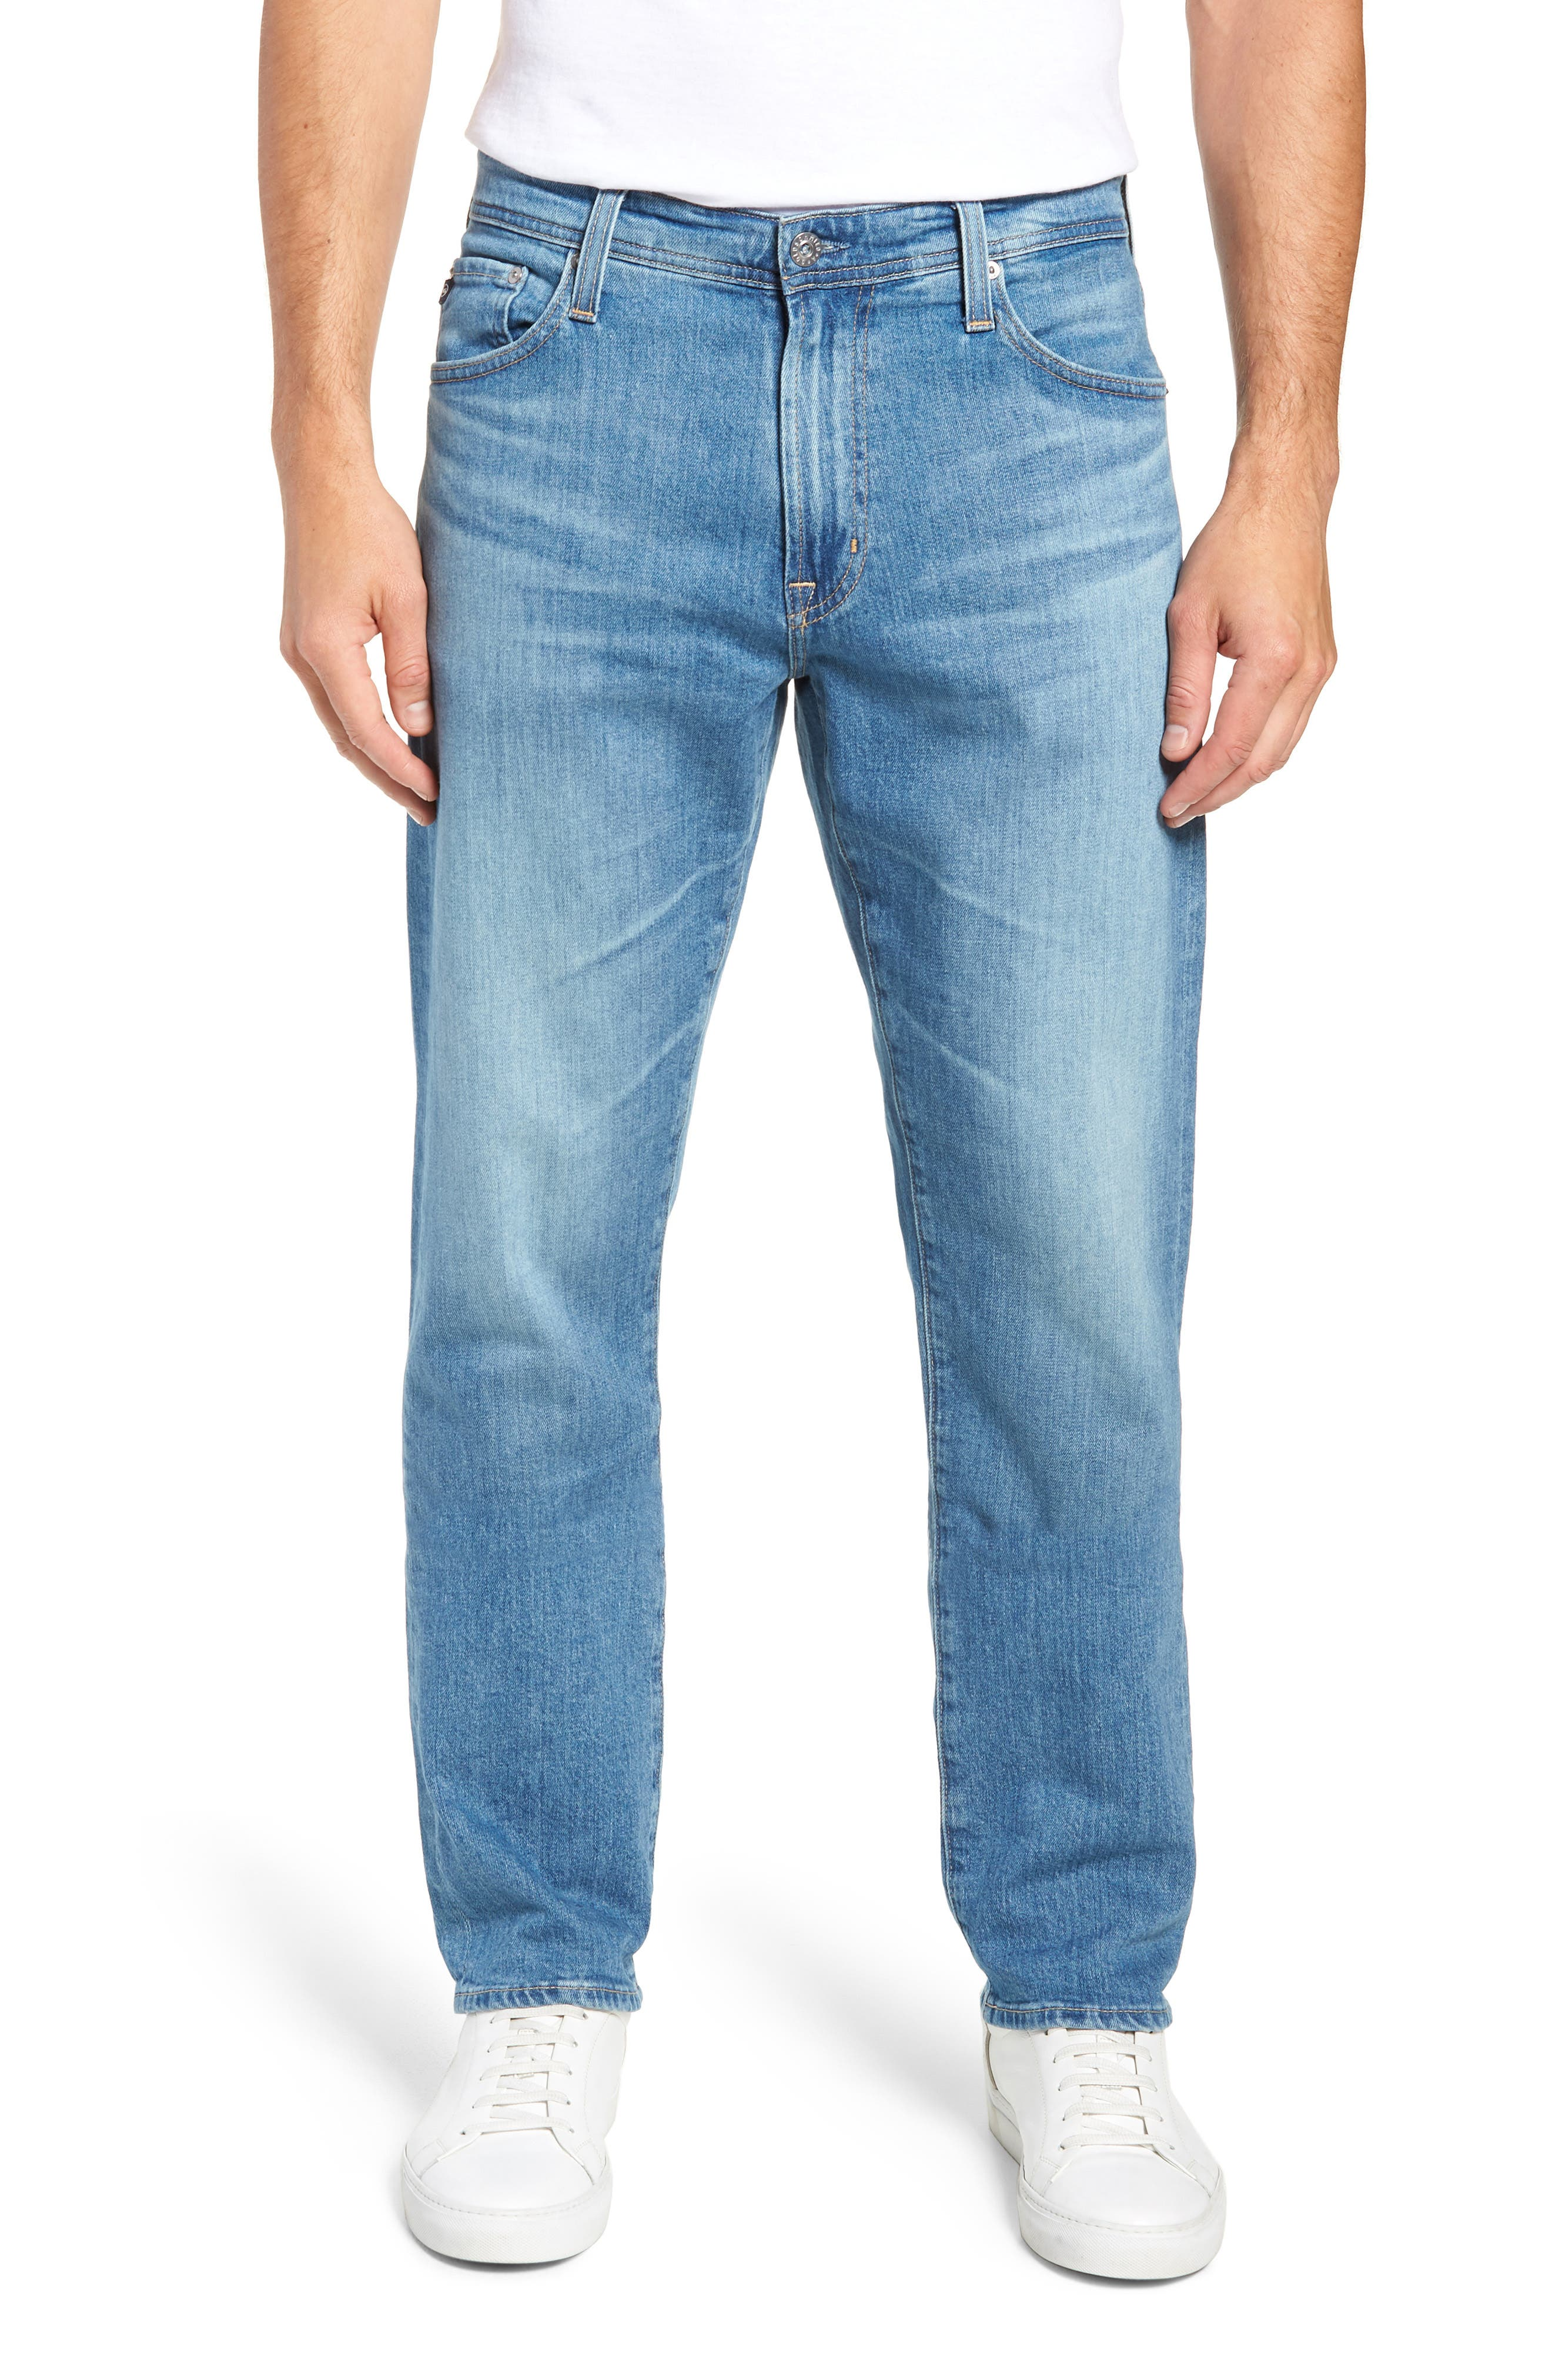 Mens Dylan Straight Jeans Cross Low Price Sale Discount Release Dates Sale Ebay Cheap Sale Fashionable 6utobySbcY